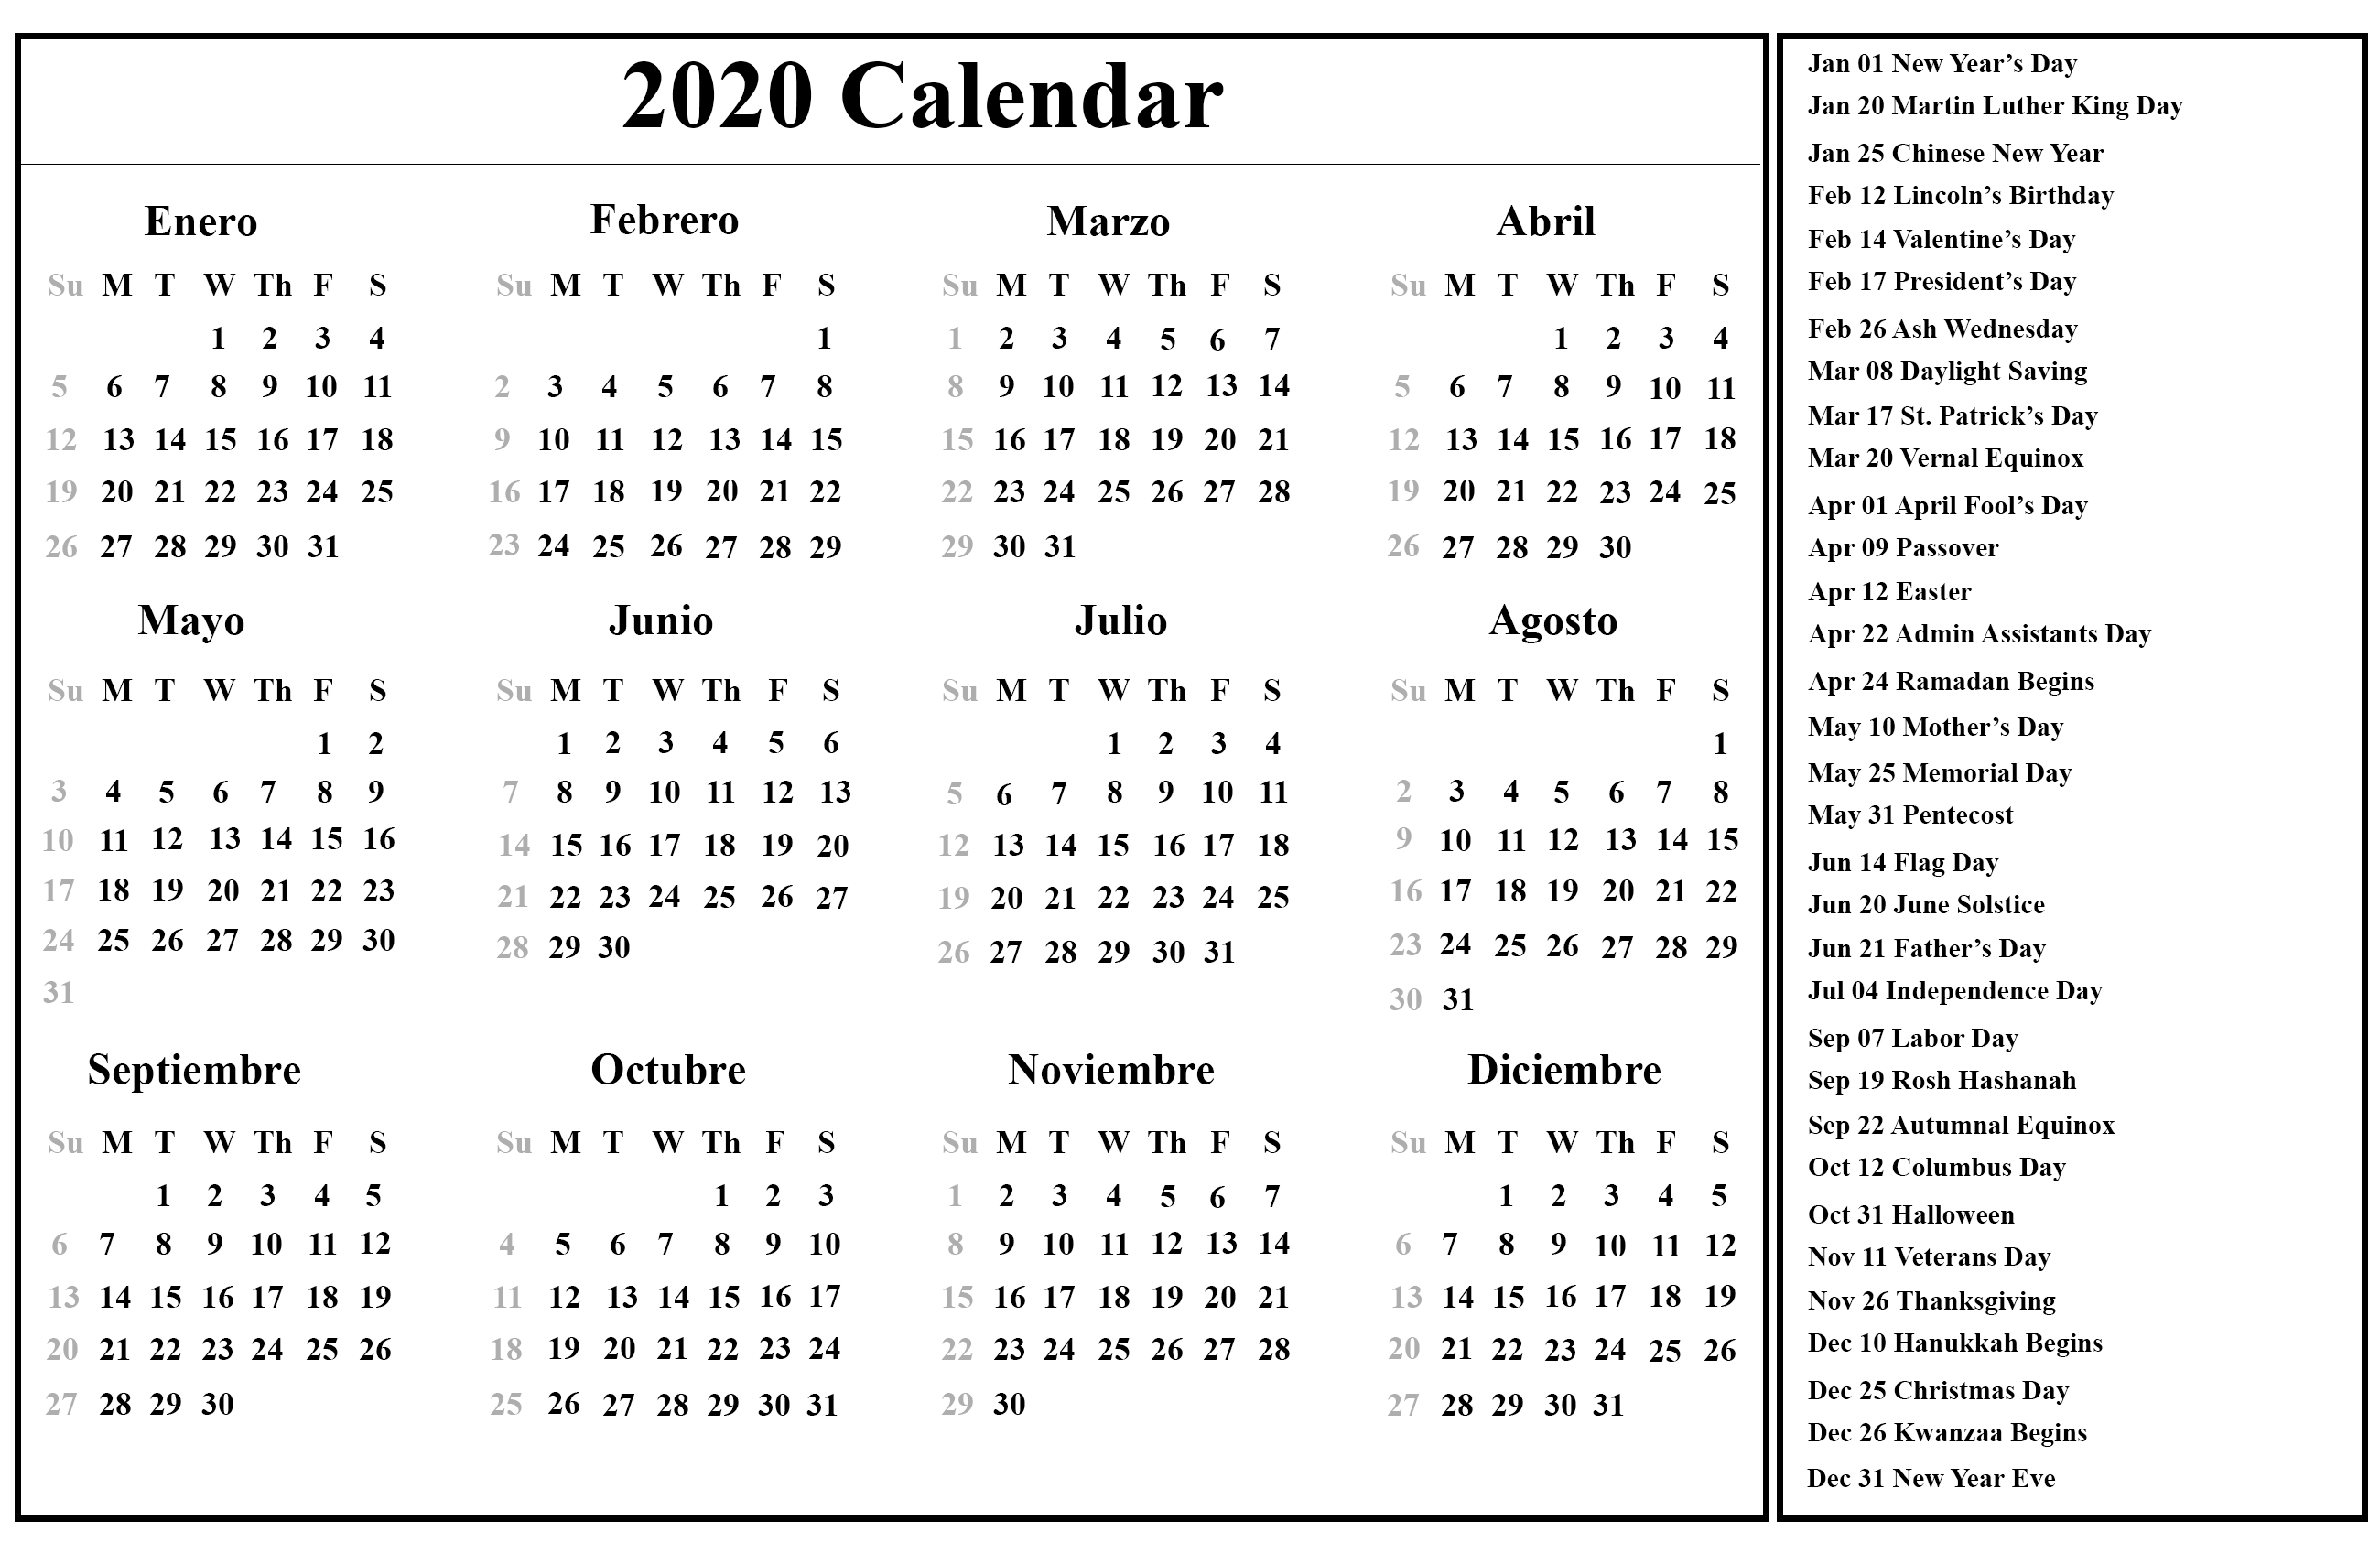 Free Printable Spanish Calendar 2020 | 2020 Calendario Year 2020 Calendar Singapore